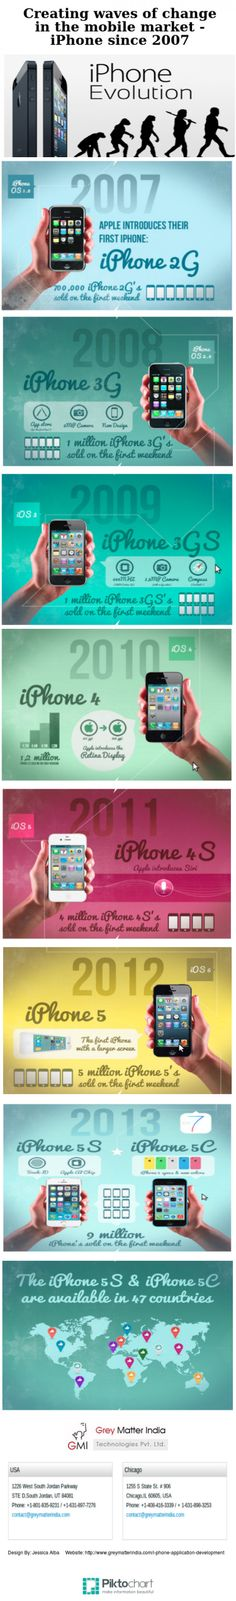 Creating waves of change in the mobile market - iPhone since 2007